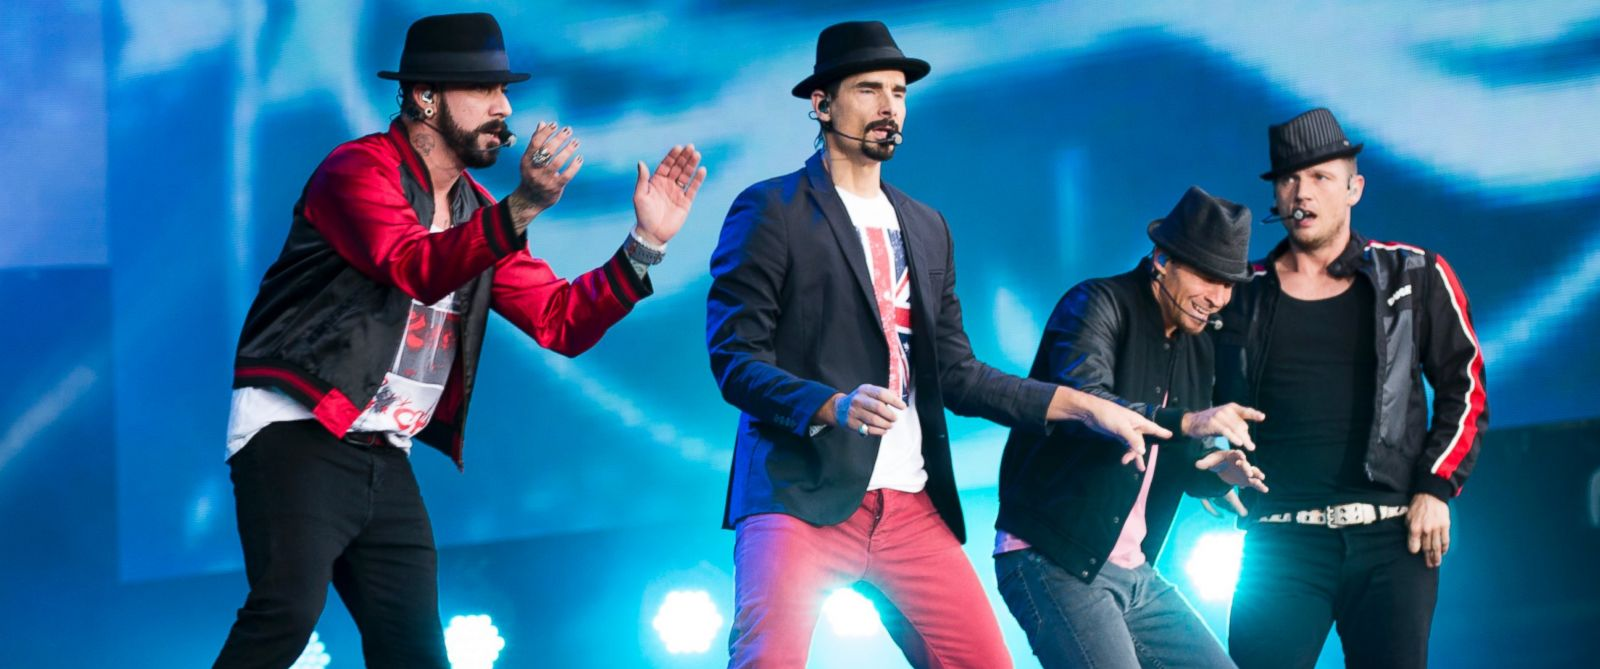 PHOTO: AJ McLean, Kevin Richardson, Brian Littrell and Nick Carter of The Backstreet Boys perform on stage at Hyde Park in London, England on July 6, 2014.